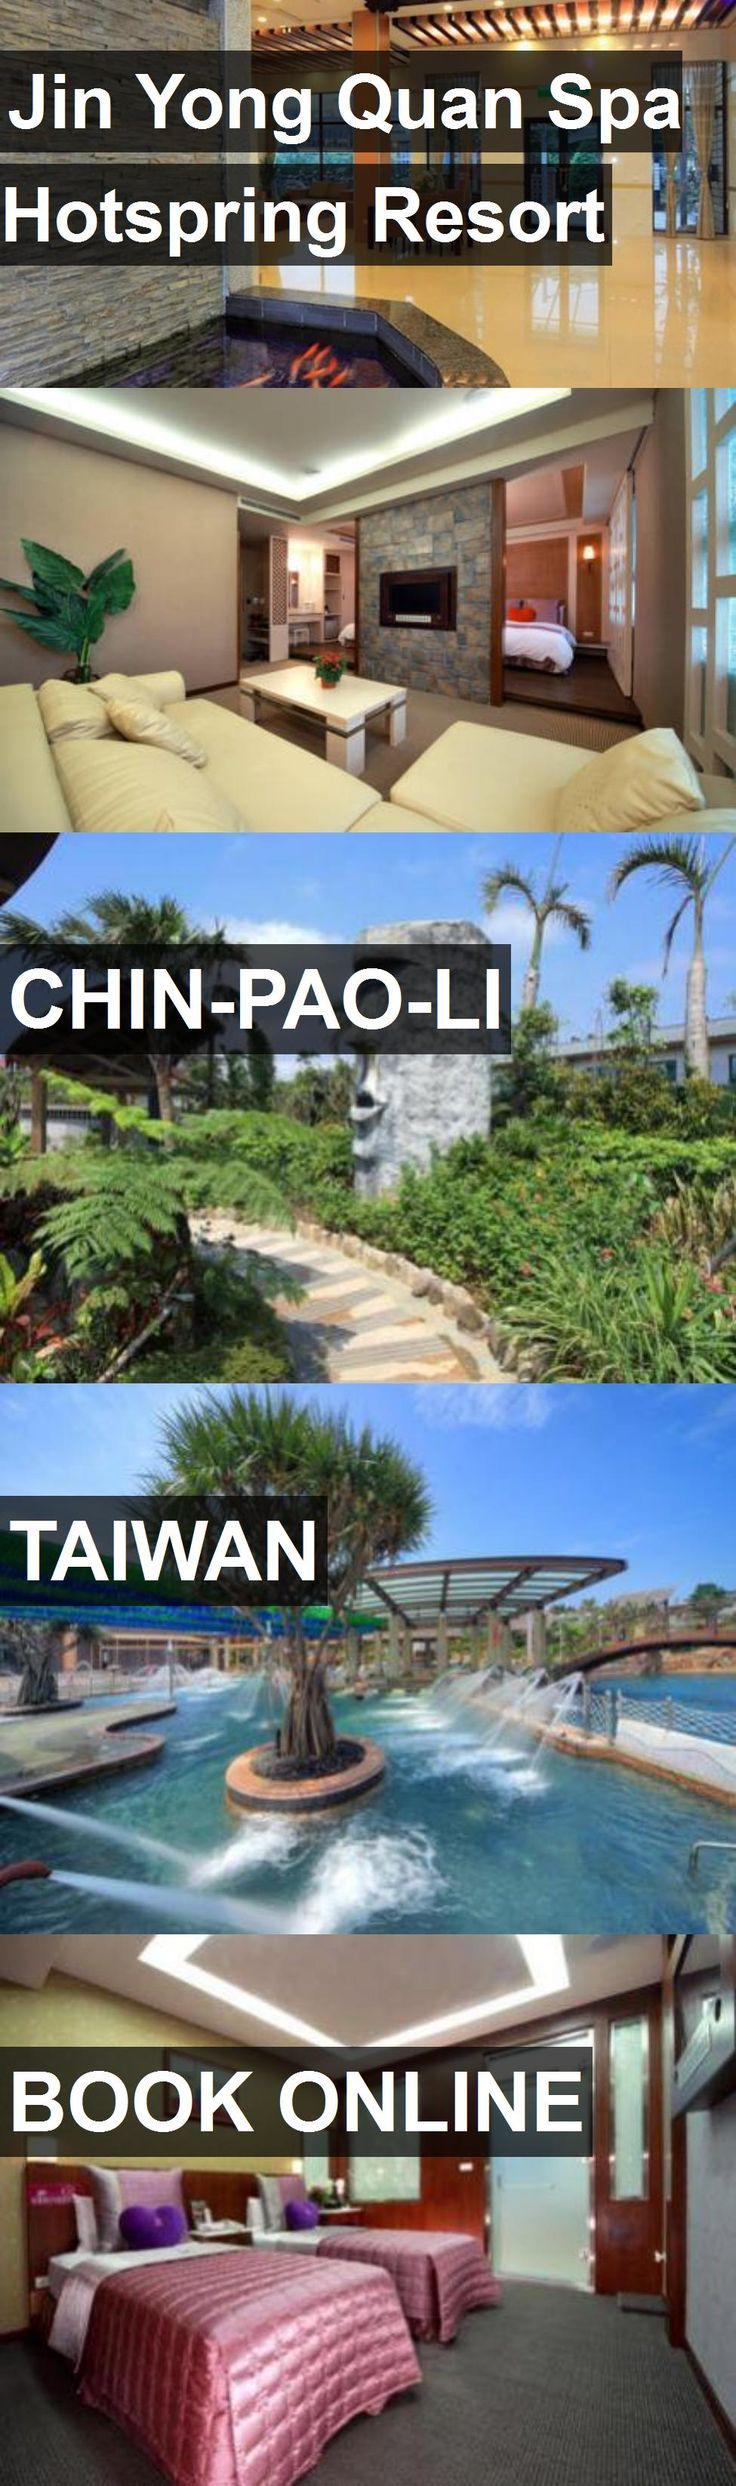 Hotel Jin Yong Quan Spa Hotspring Resort in Chin-pao-li, Taiwan. For more information, photos, reviews and best prices please follow the link. #Taiwan #Chin-pao-li #travel #vacation #hotel